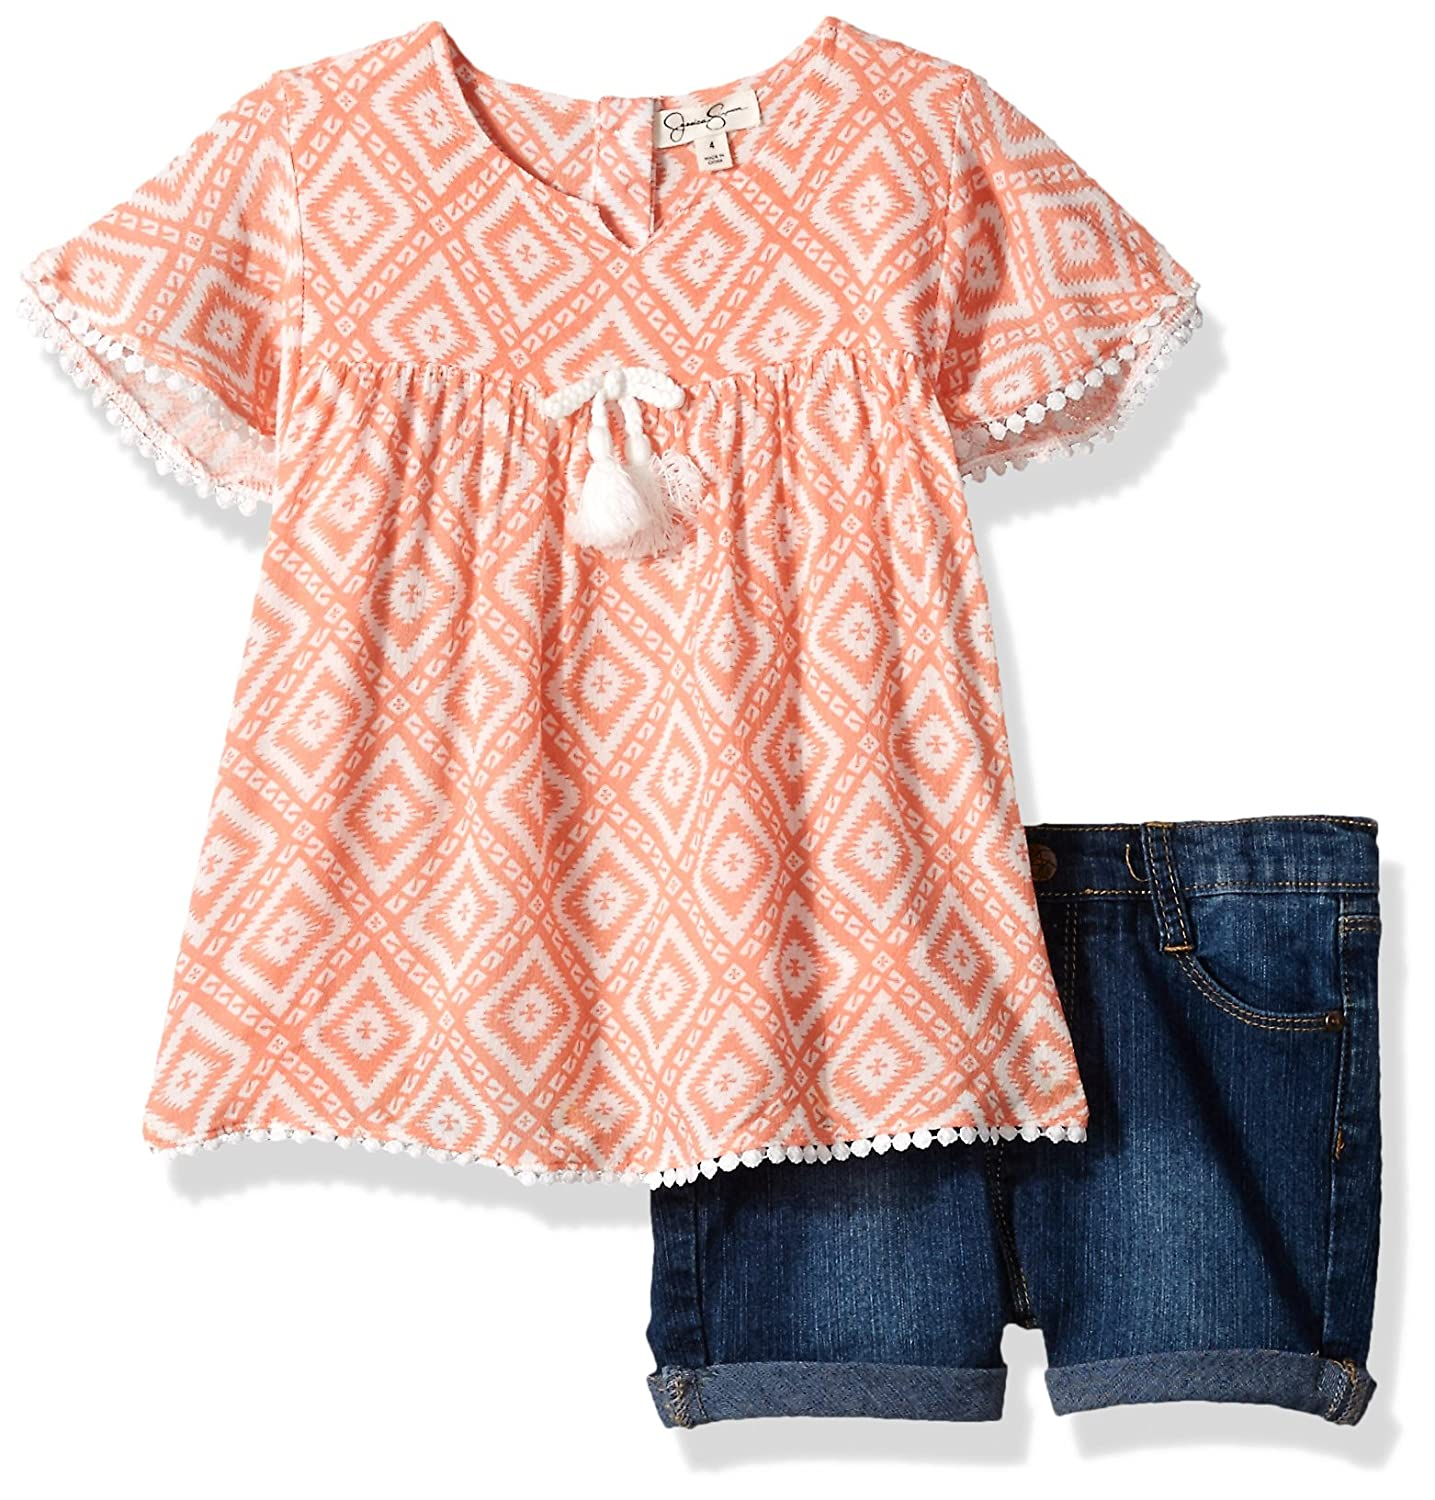 Jessica Simpson Girls' Printed Crinkle Top and Roll-Cuff Short Peach Amber 4 Jessica Simpson Childrens Apparel Child Code JSGX3150-PAP-4